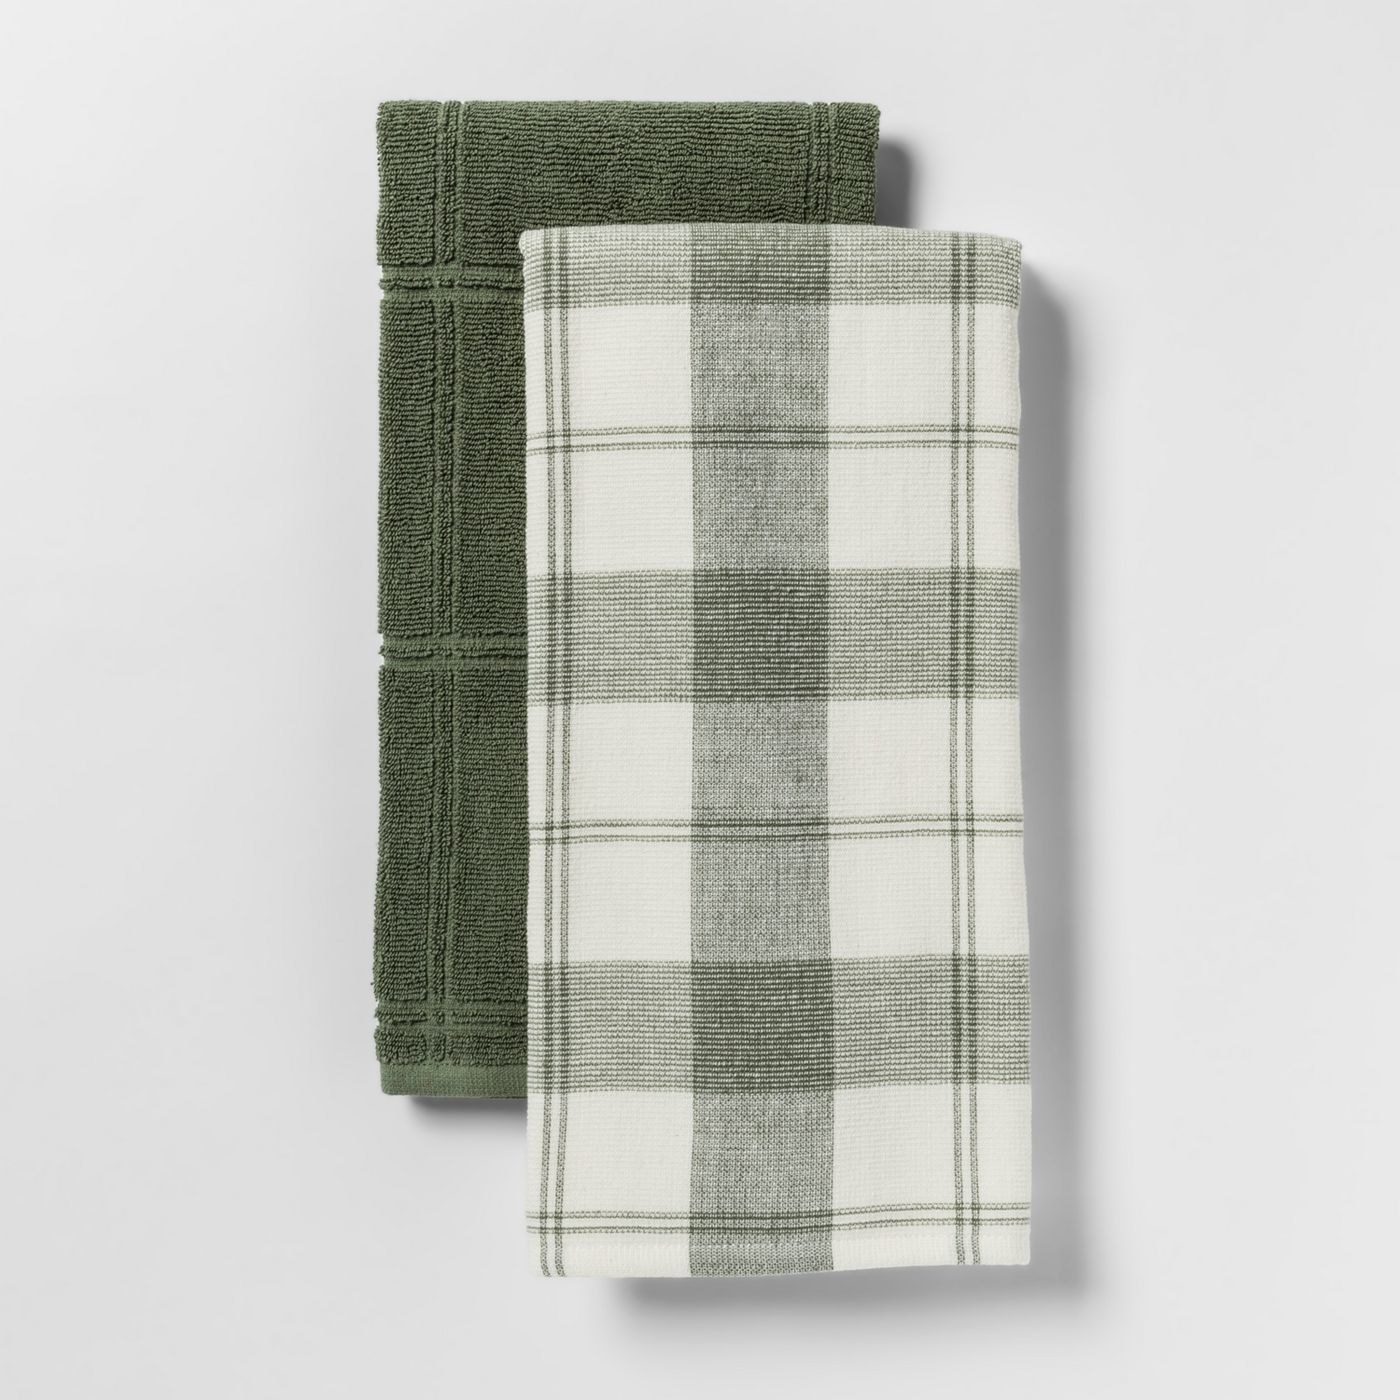 Two kitchen towels, one in solid dark green and the other in light plaid green